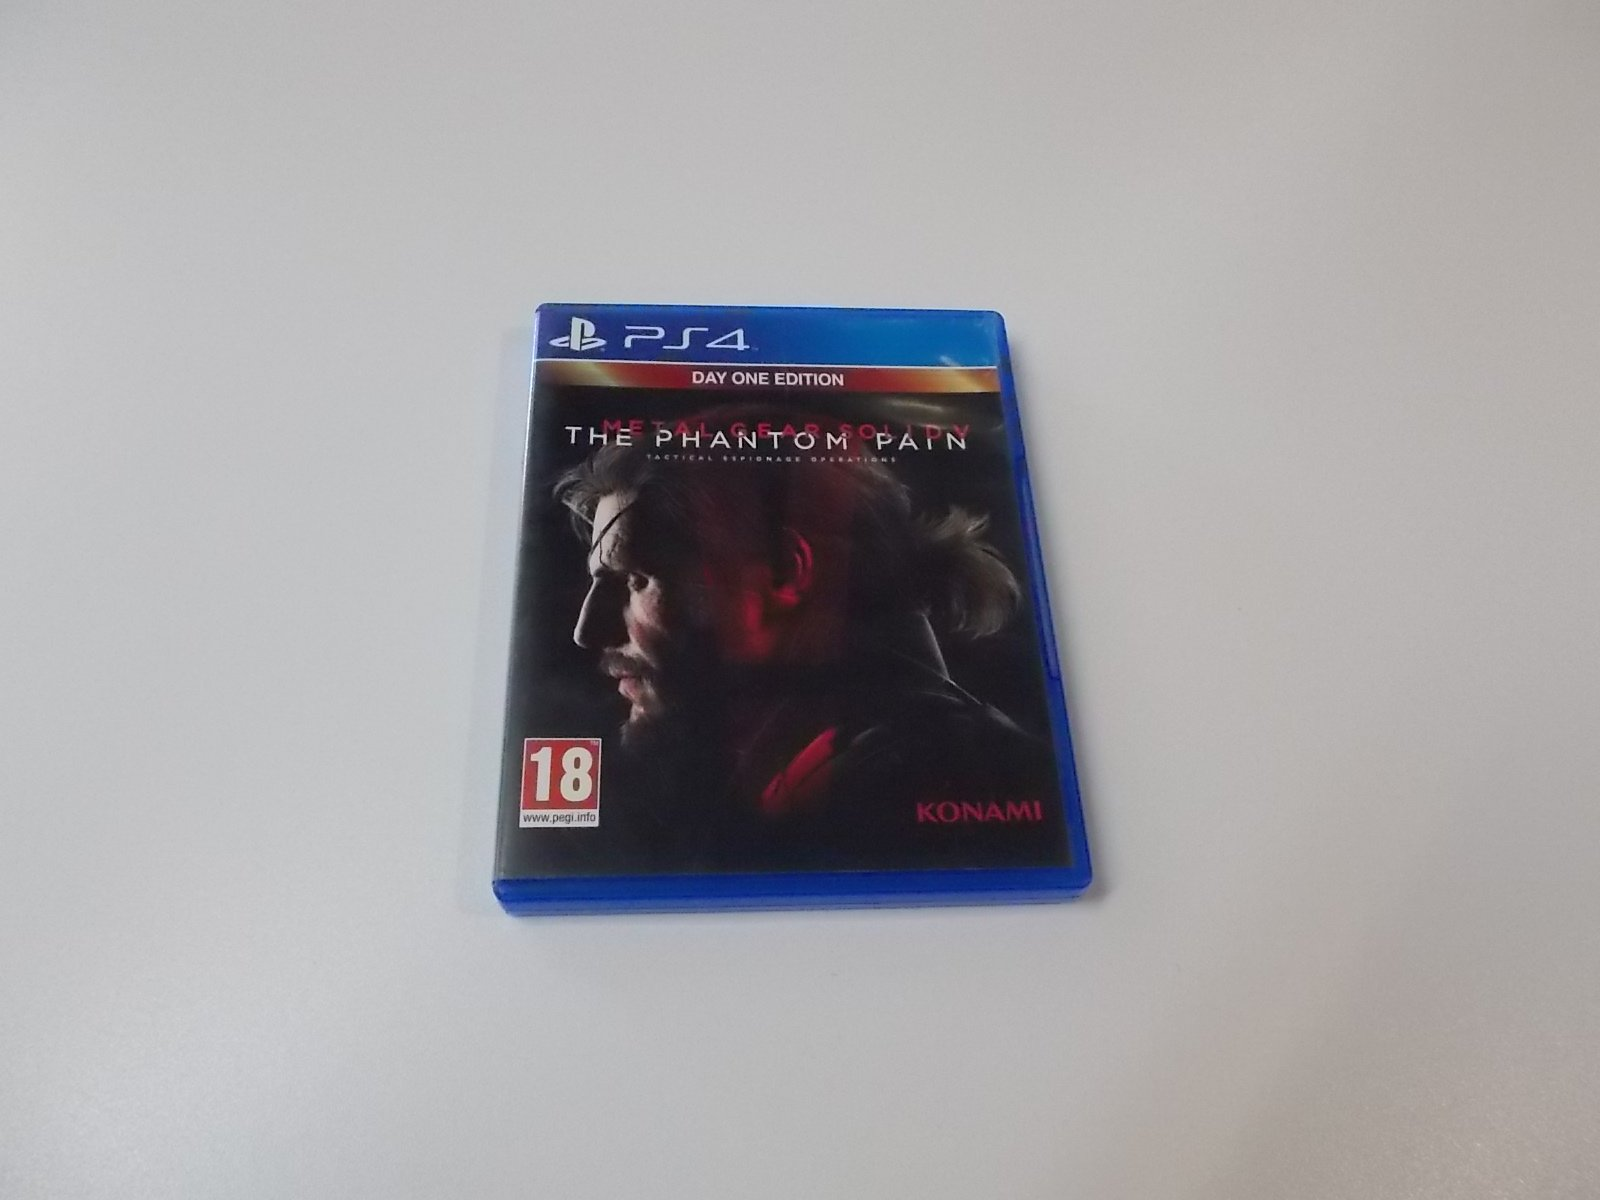 Metal Gear Solid V: The Phantom Pain - GRA Ps4 - Opole 0454